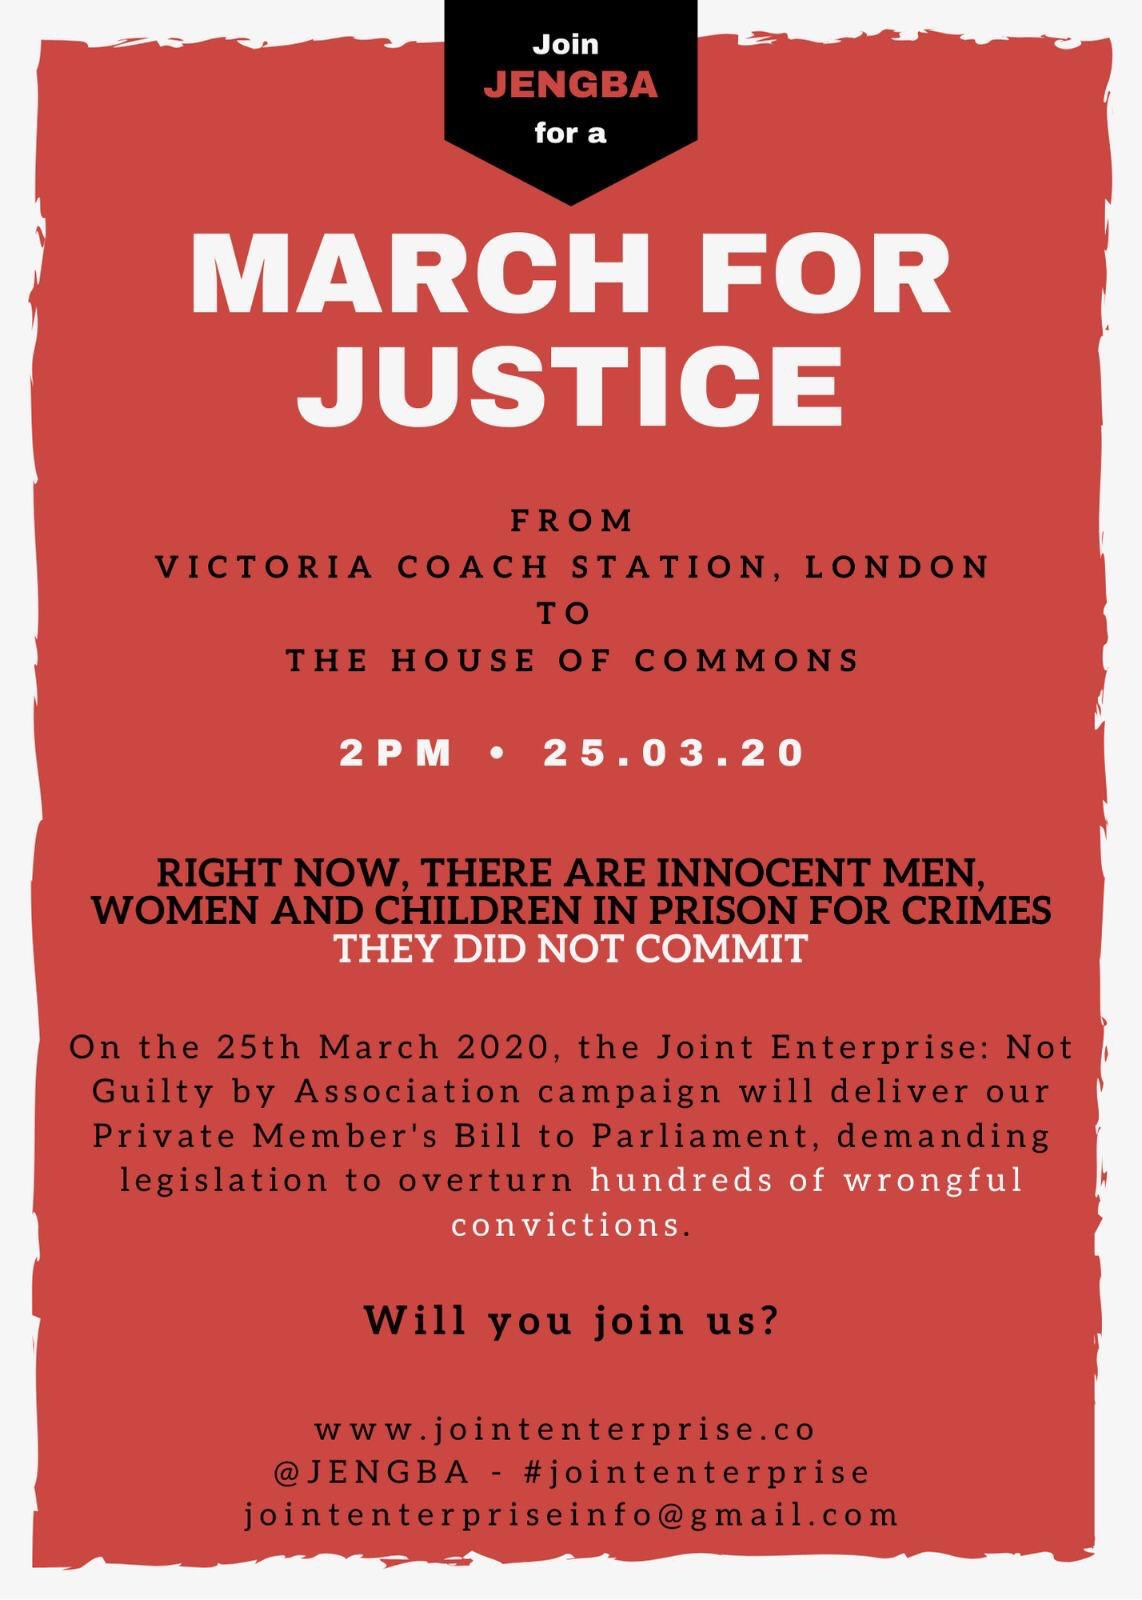 JENGBA March for Justice flyer